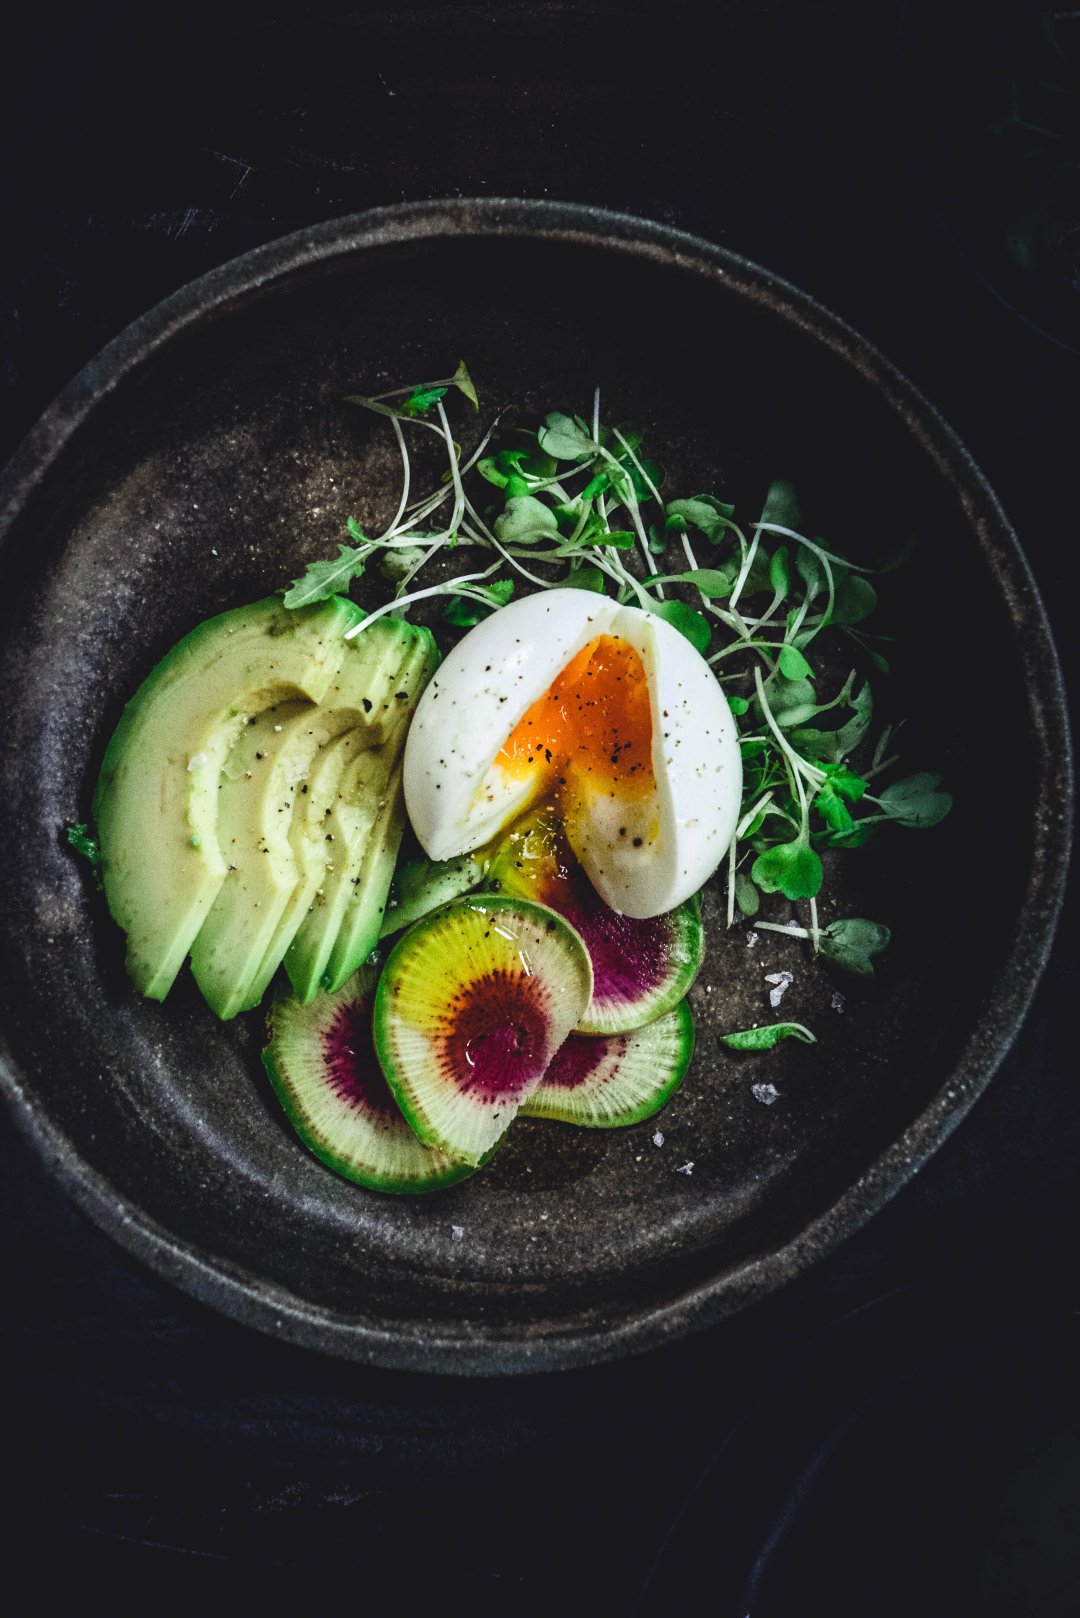 If you're looking to make the perfect soft boiled egg, you've come to the right place. In this post you'll find out exactly how to cook the perfect, gooey, delicious soft boiled egg that will be perfect every single time. #softboiledegg #egg #howtocookeggs #boiledegg #paleo #whole30 #glutenfree #recipe #calmeats #grainfree #dairyfree #realfoodrecipes